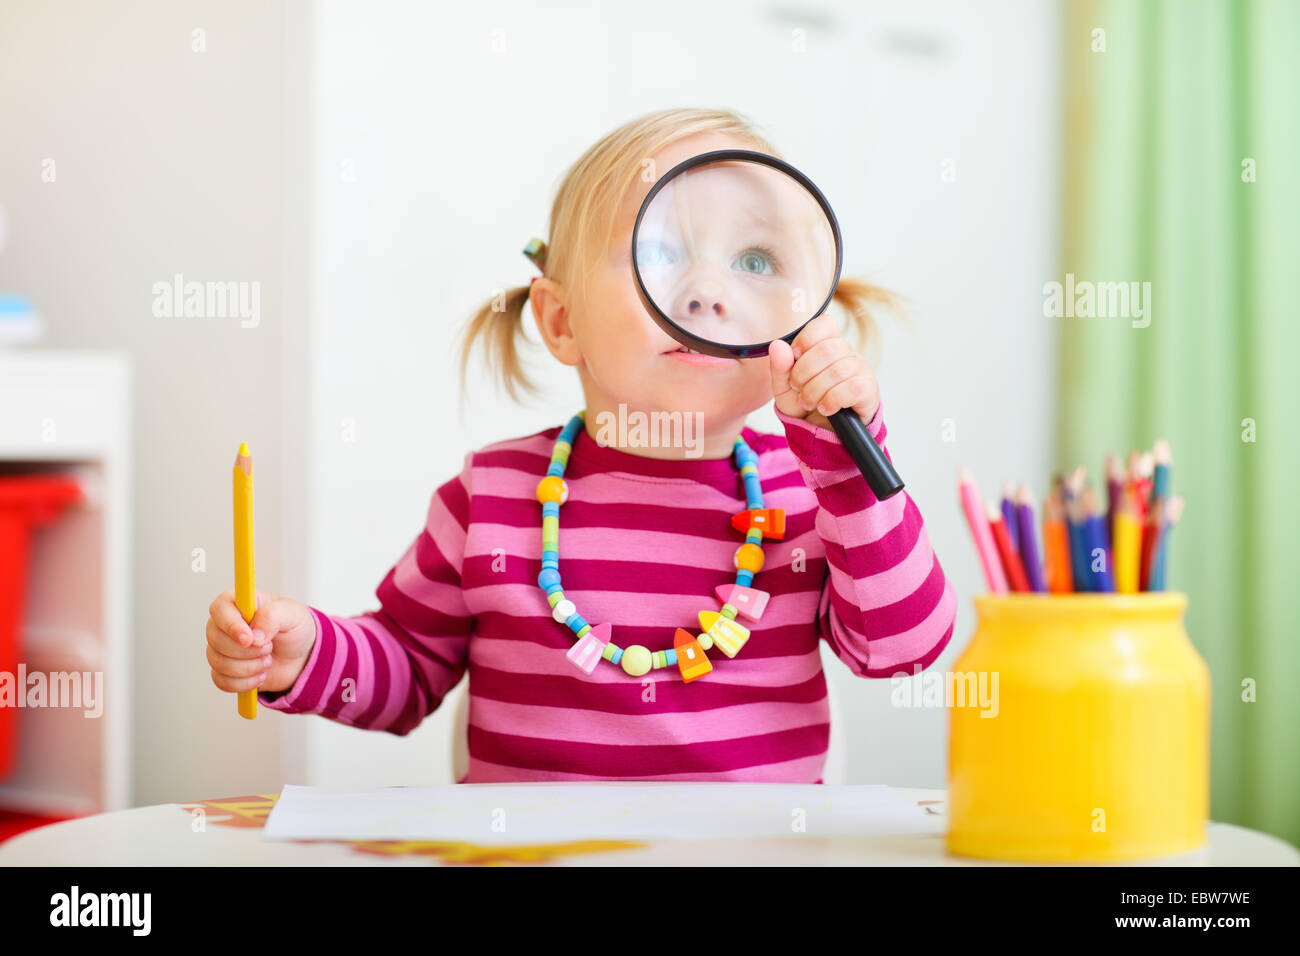 a little girl looking through a loupe - Stock Image